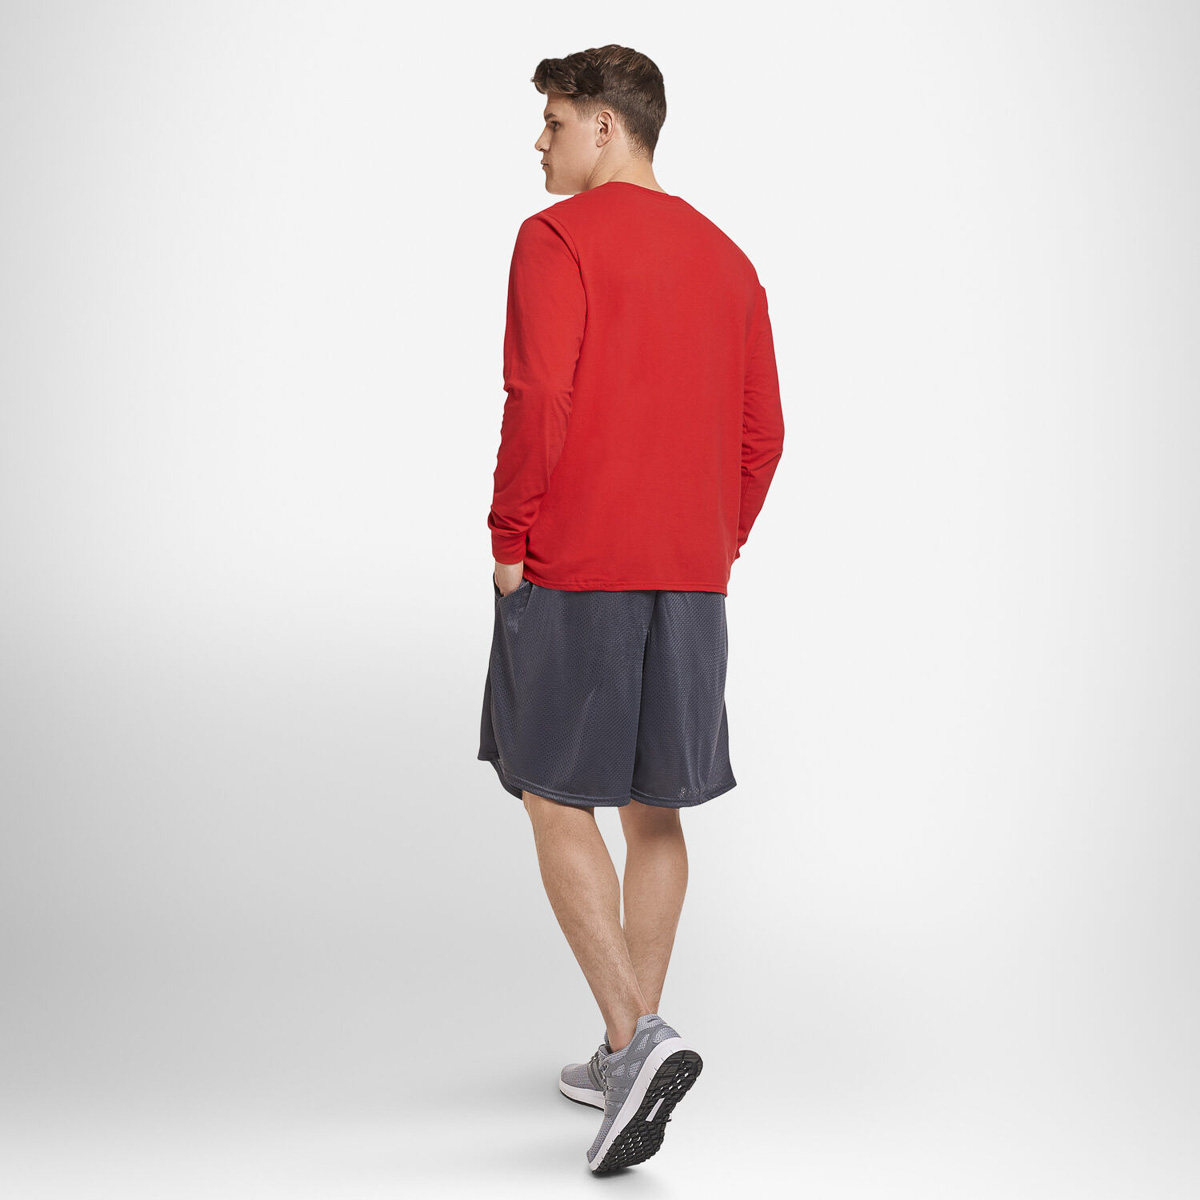 thumbnail 21 - Russell-Athletic-Mens-Shorts-With-Pockets-Mesh-Moisture-Wicking-Gym-Activewear